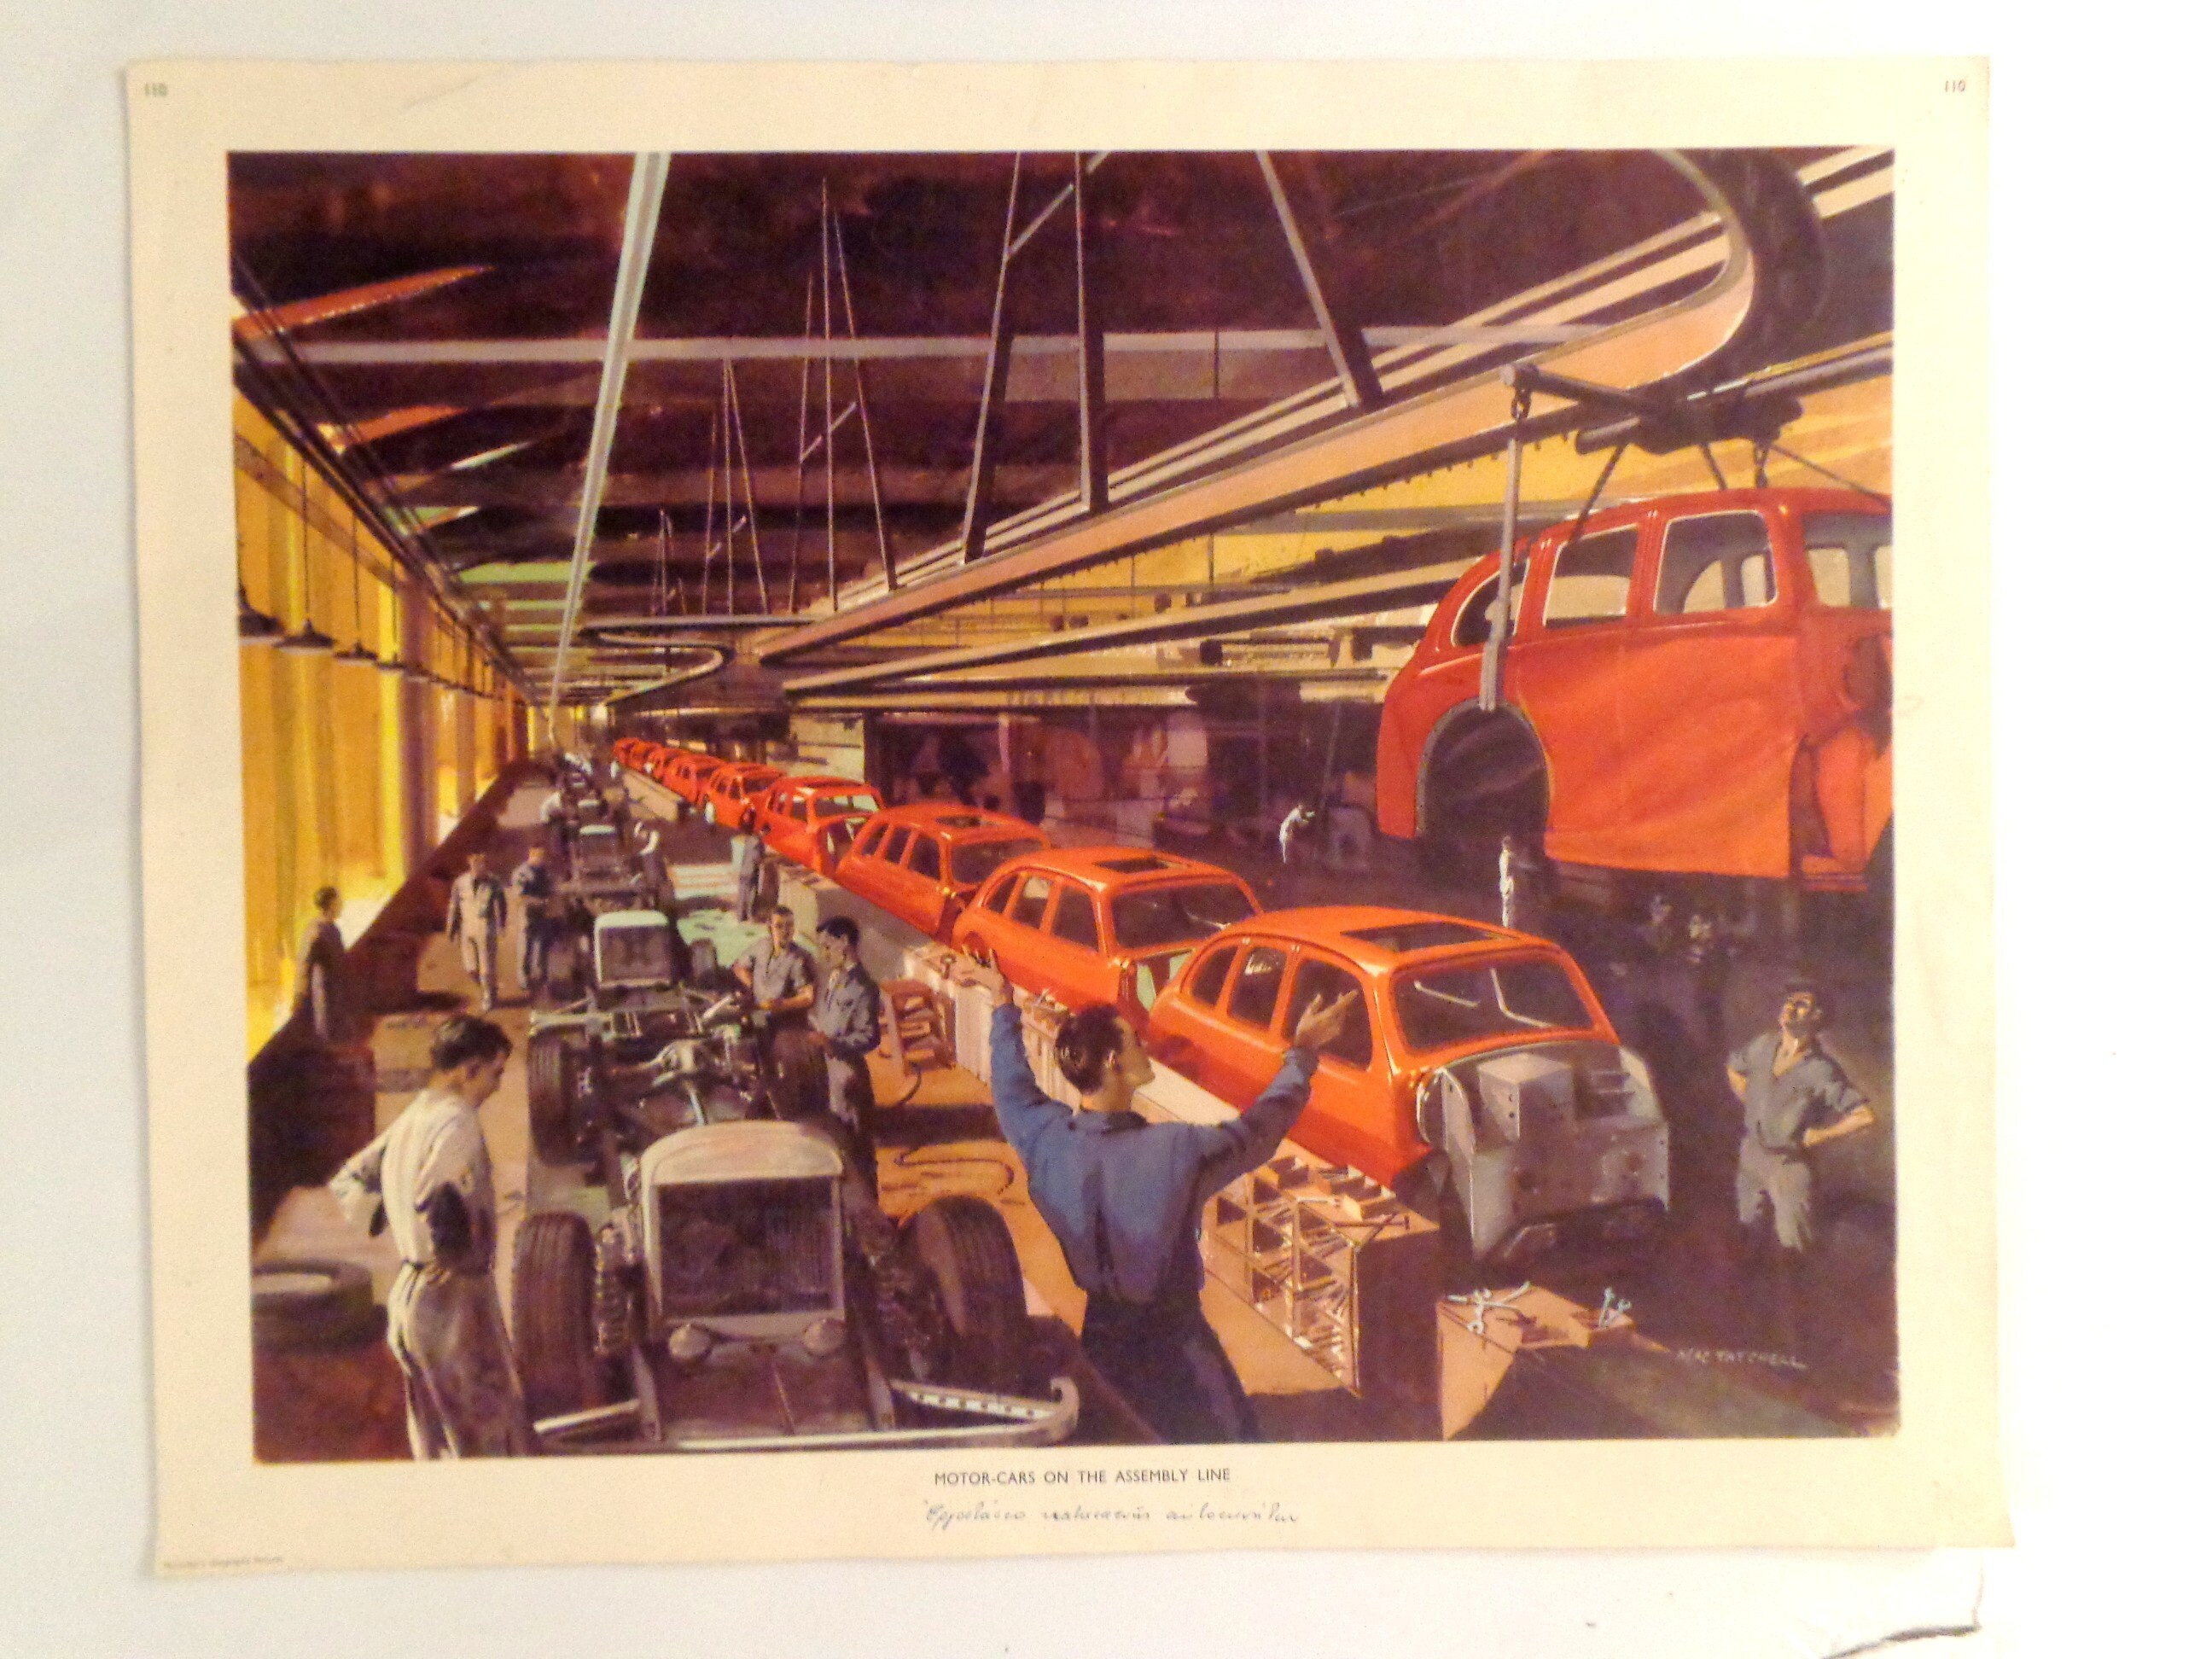 Libro Motores Macmillan 1960 Vintage Industrial Poster Motor Cars On The Assembly Line Original Macmillan Poster Print